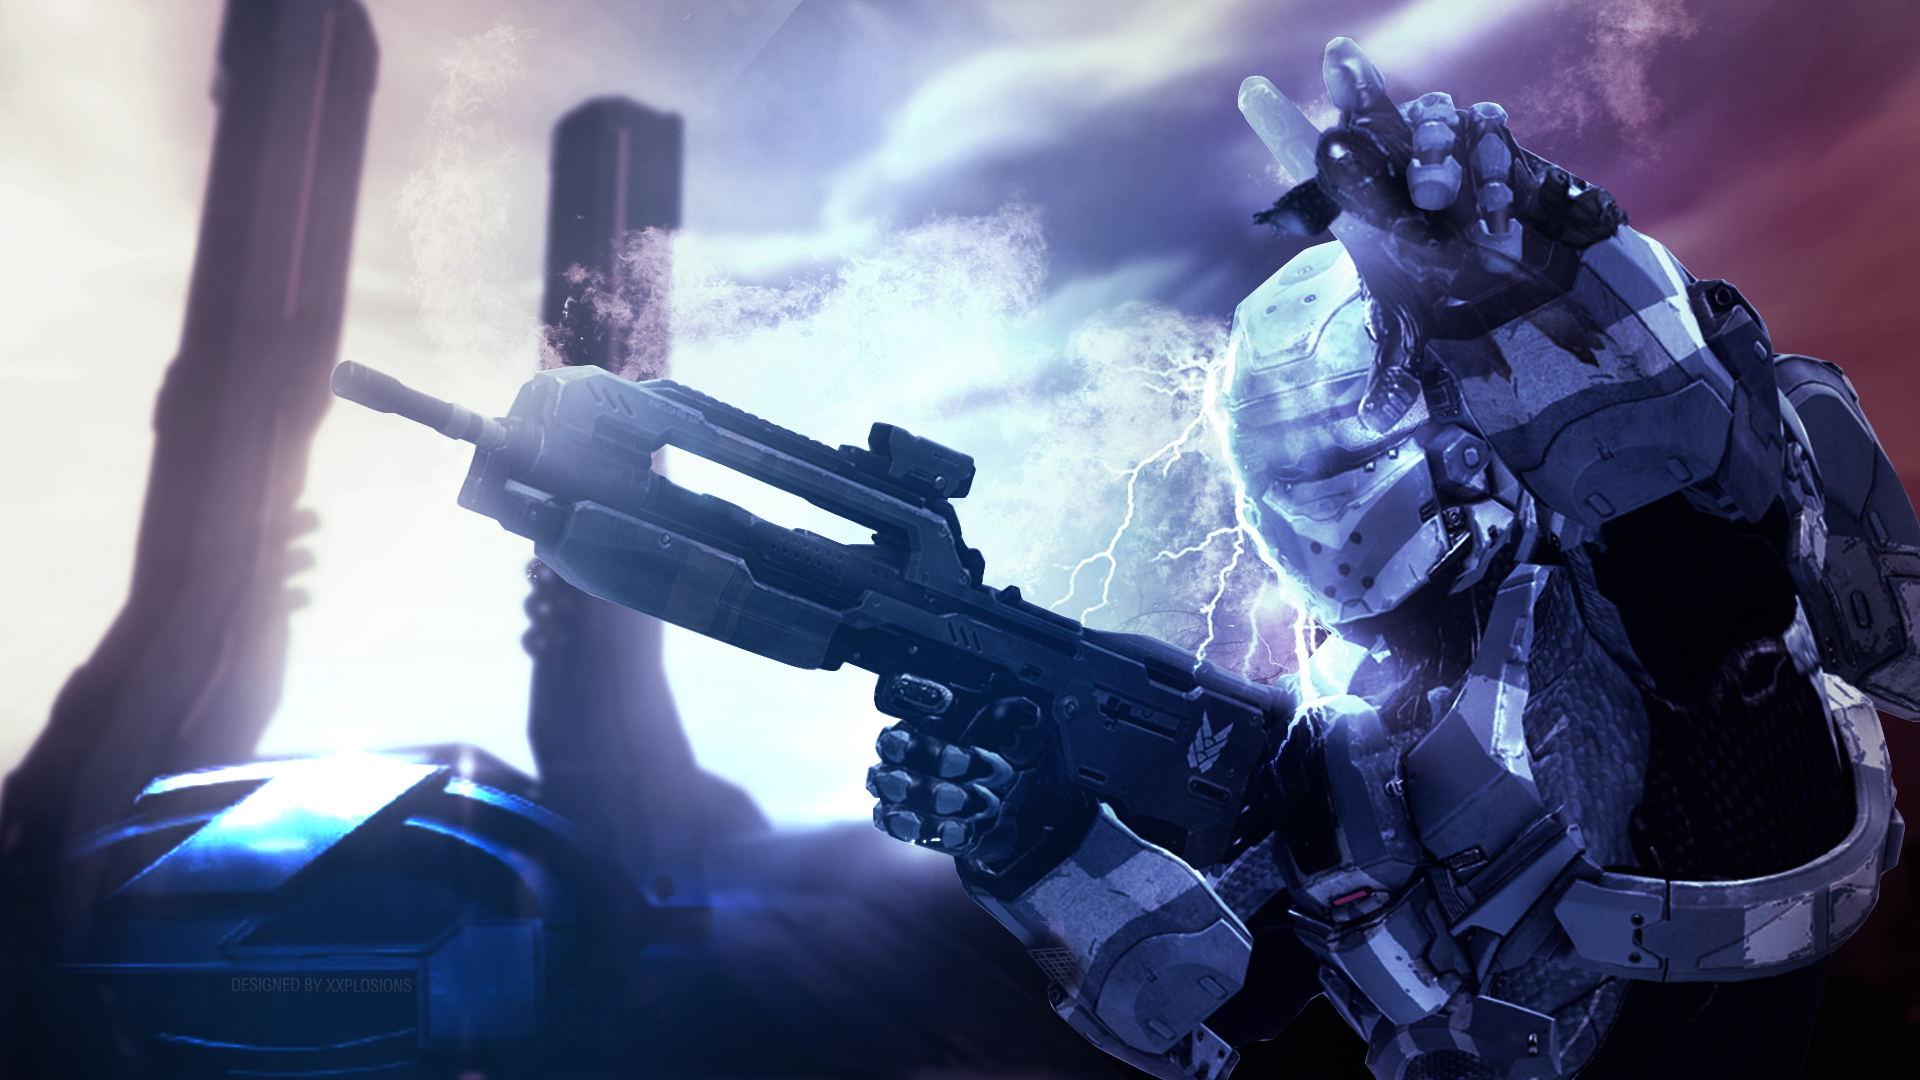 Whats Up Halo 4 Desktop Wallpaper Page 1 of 1 1920x1080